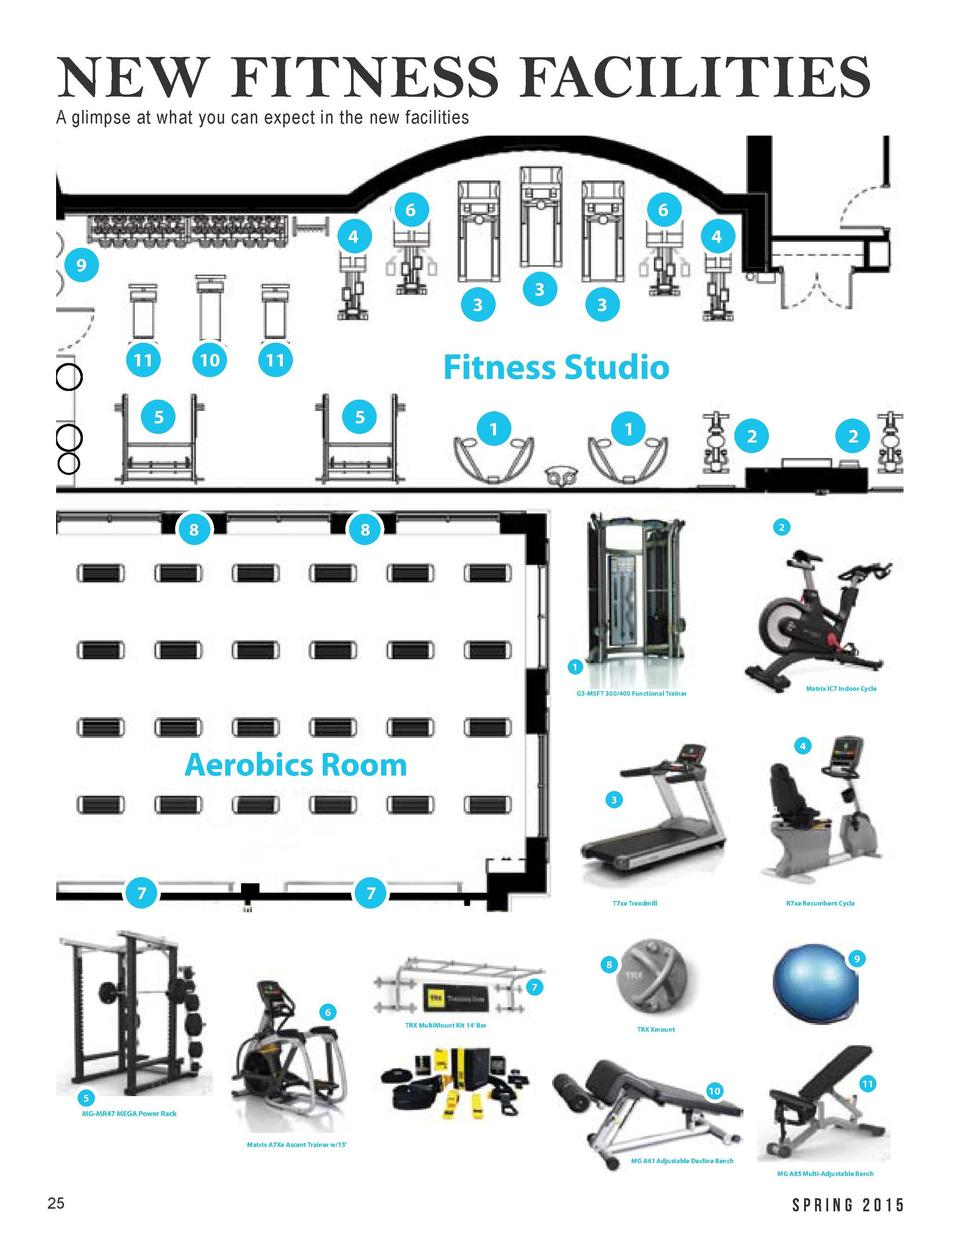 C H A N G I N G Y O U R B E H AV I O U R T O WA R D S  HEALTH   WELLNESS  NEW FITNESS FACILITIES A glimpse at what you can...